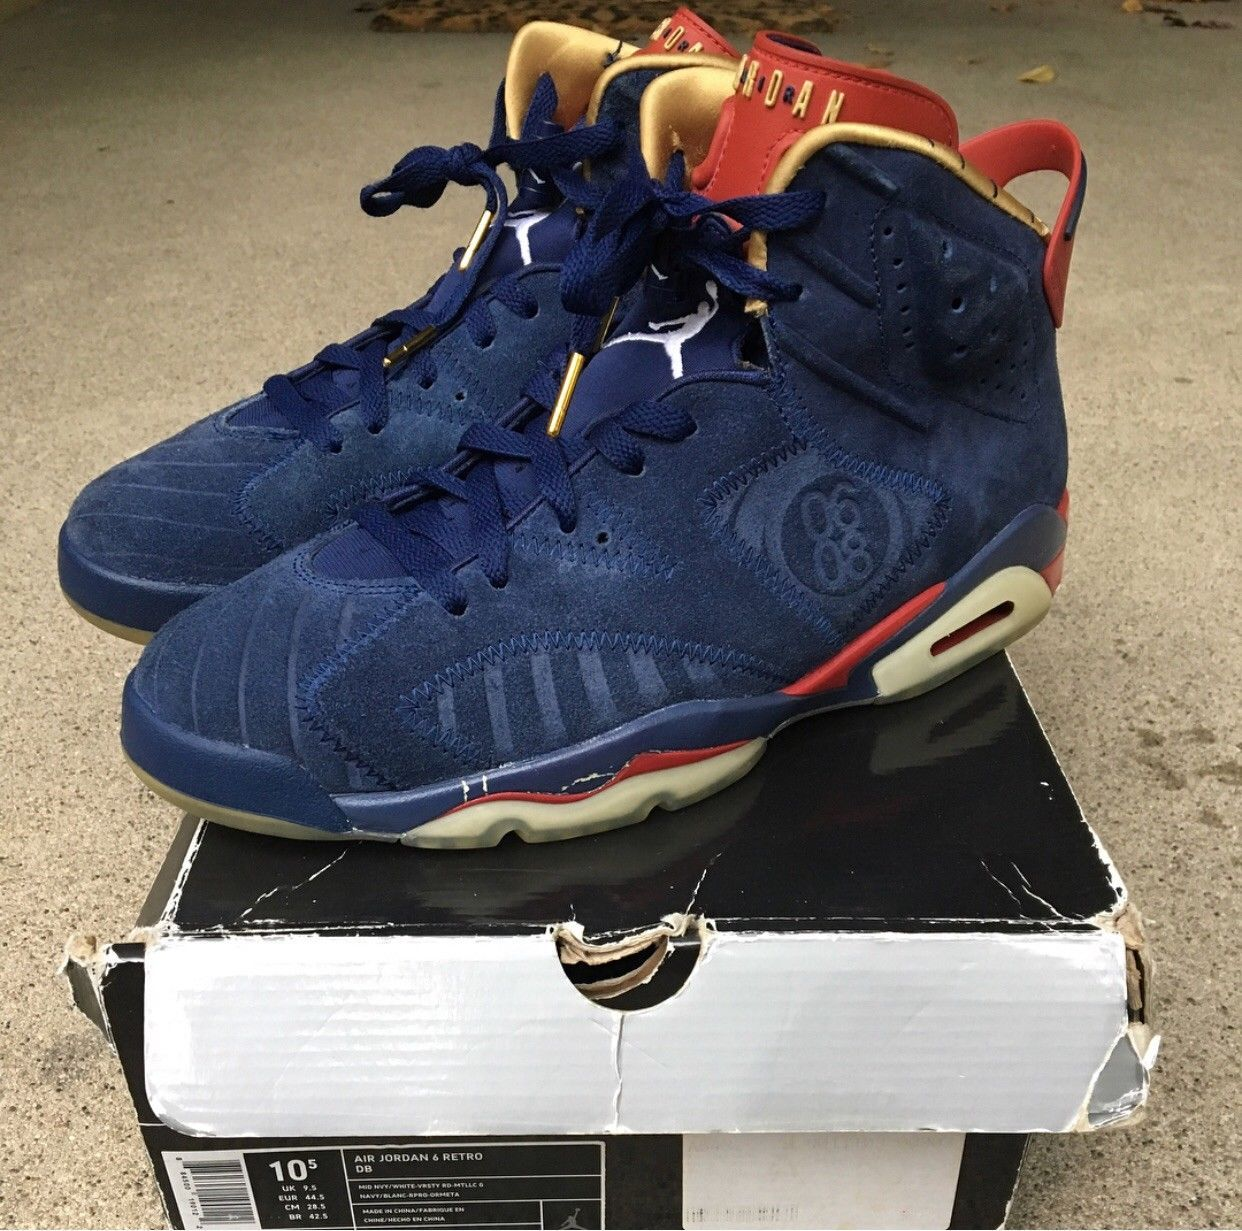 9d4179a55531c5 Air jordan 6 retro doernbecher size 10.5 vi db in 2019